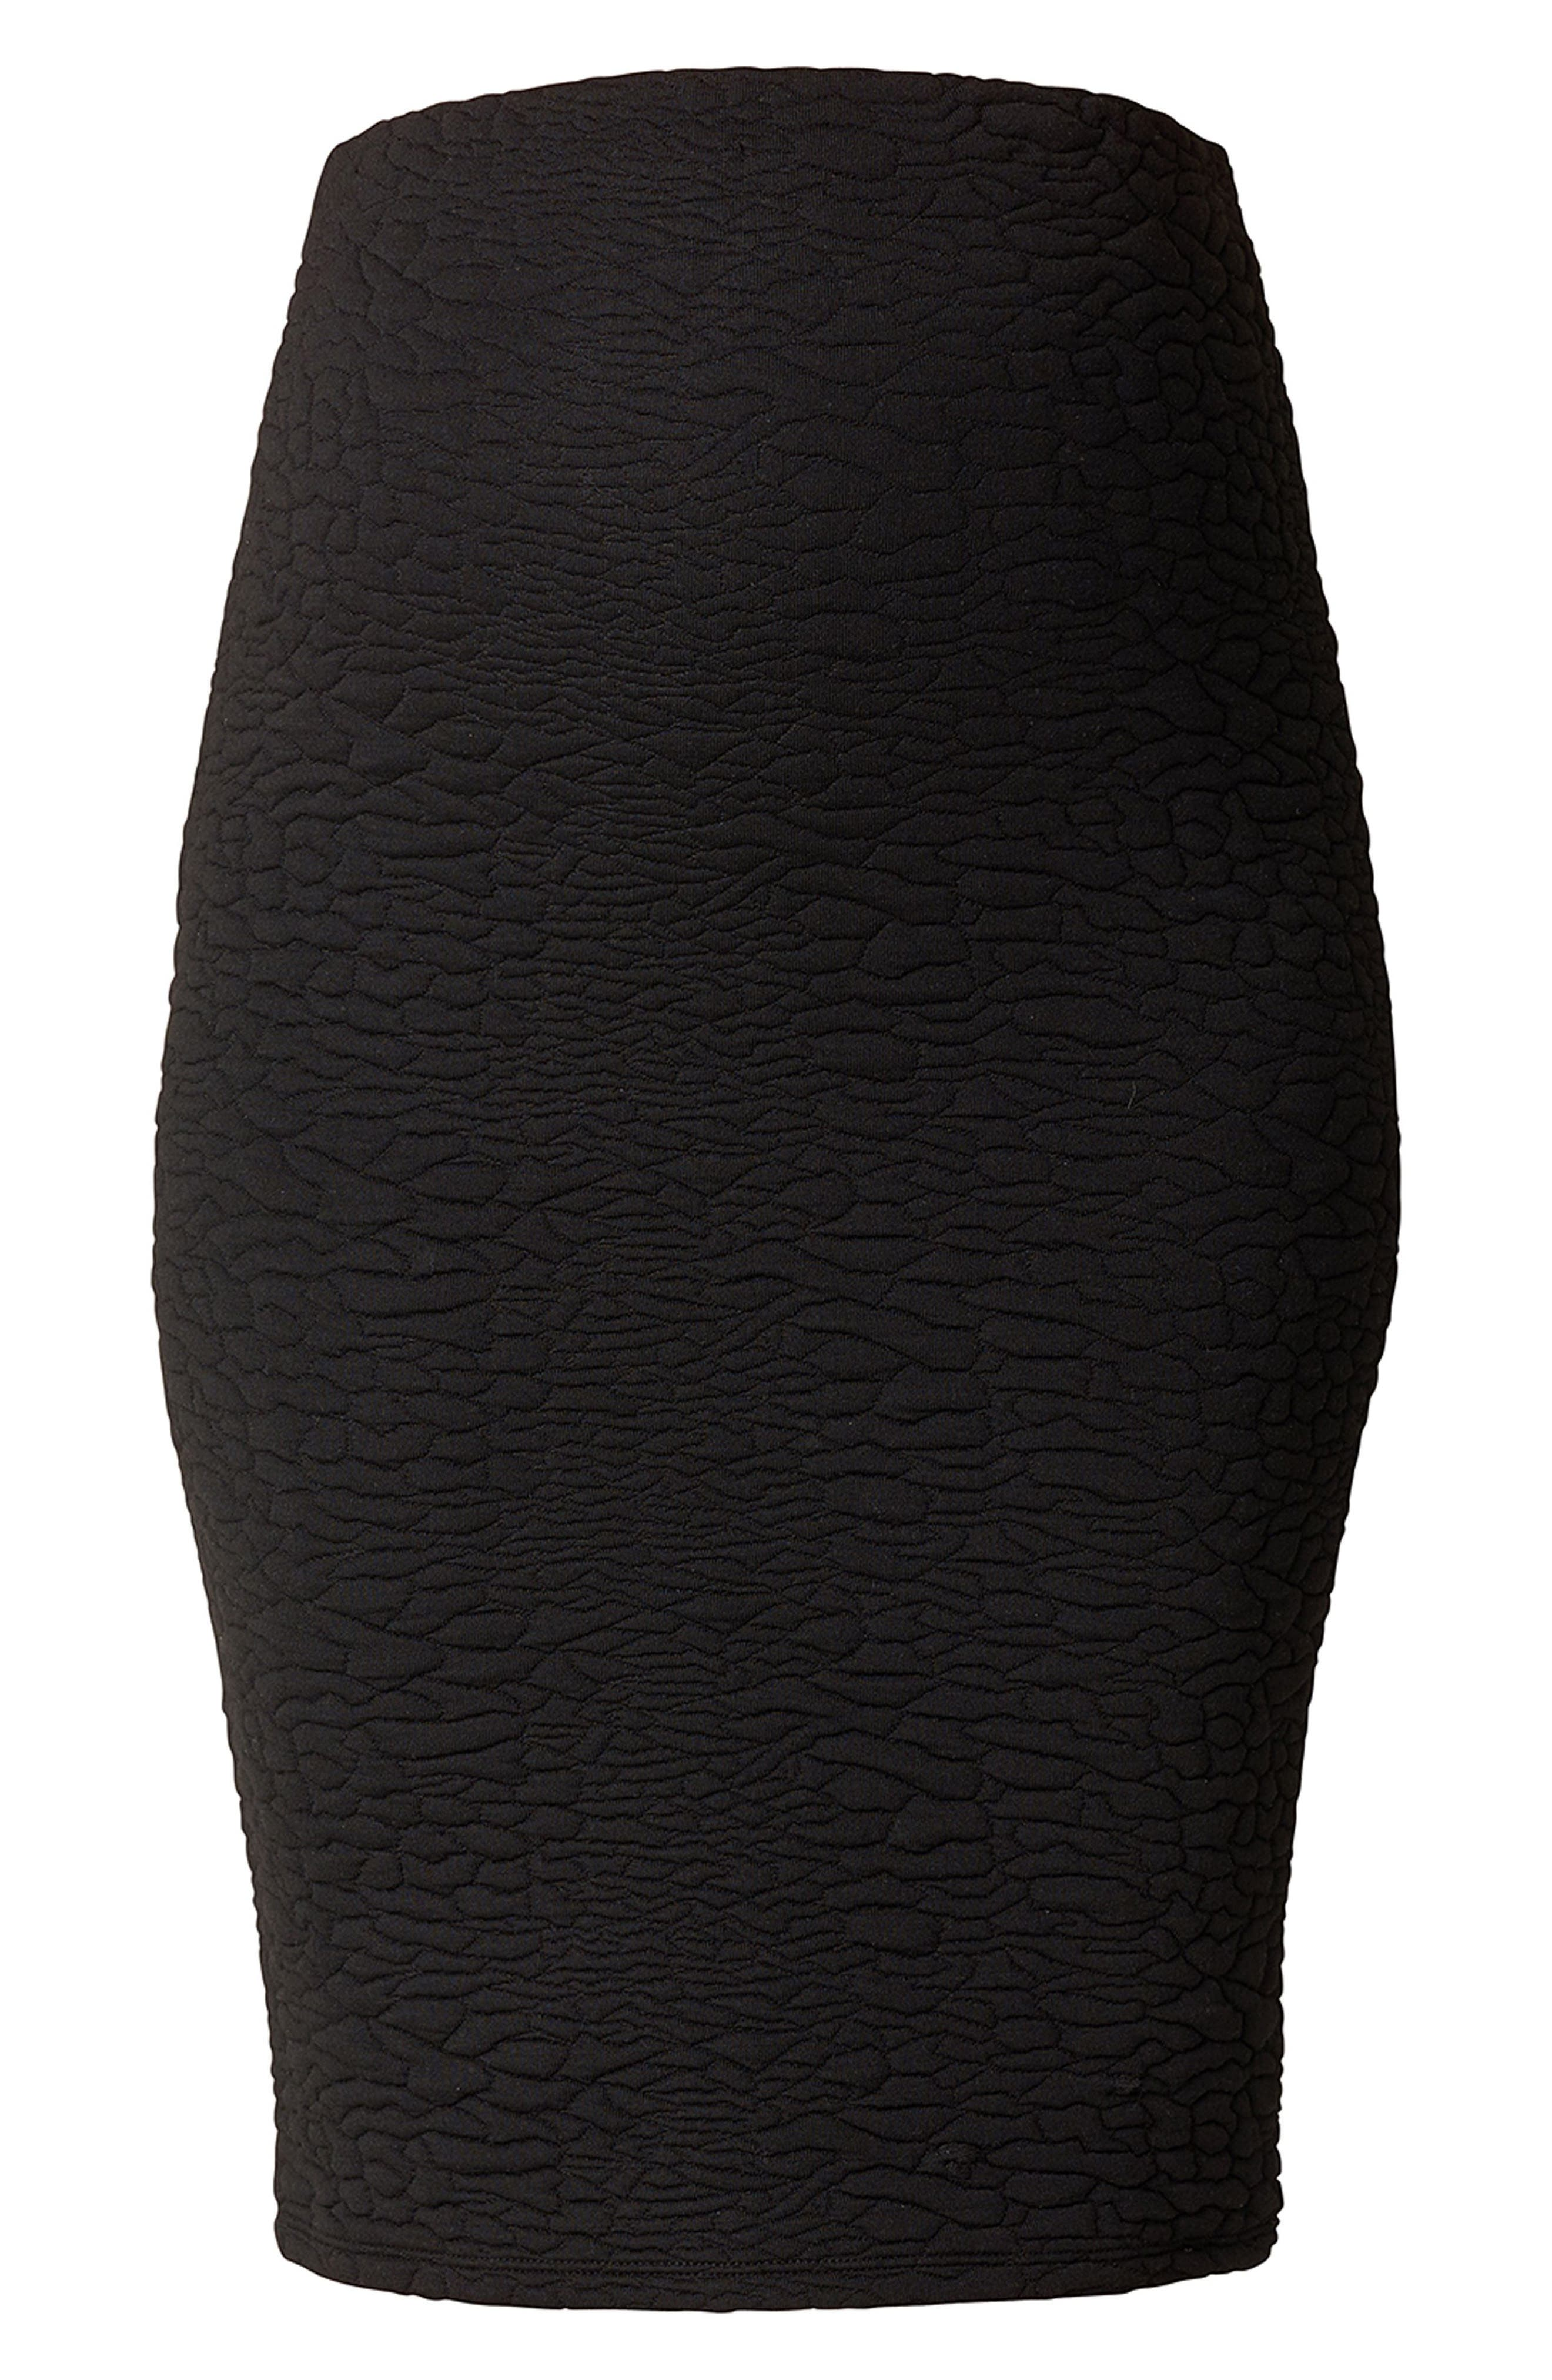 Alternate Image 1 Selected - Noppies Jane Textured Knit Maternity Skirt